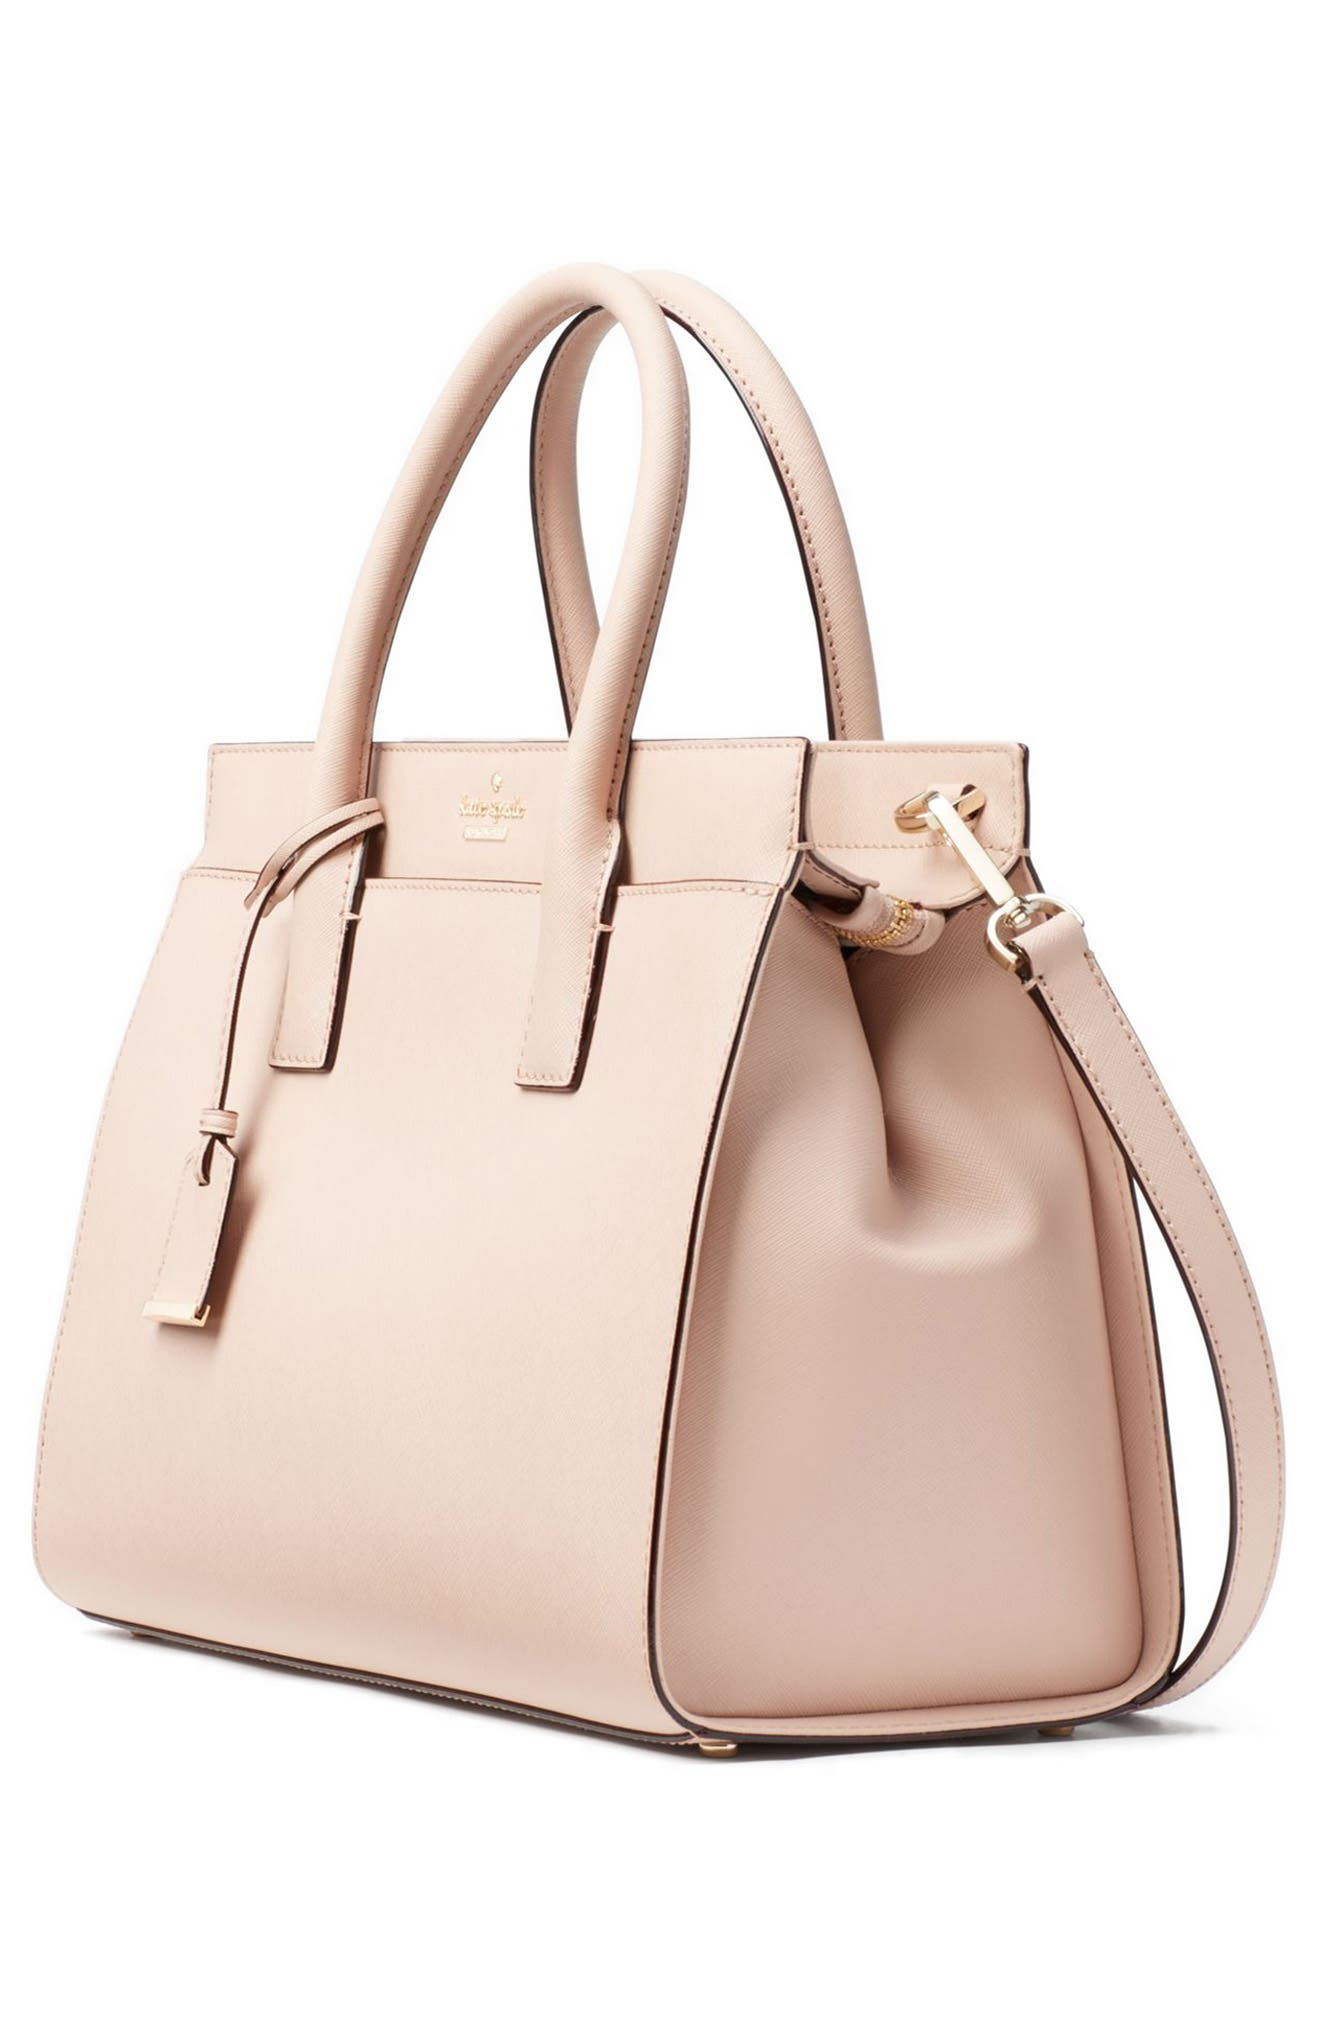 cameron street - candace leather satchel,                             Alternate thumbnail 55, color,